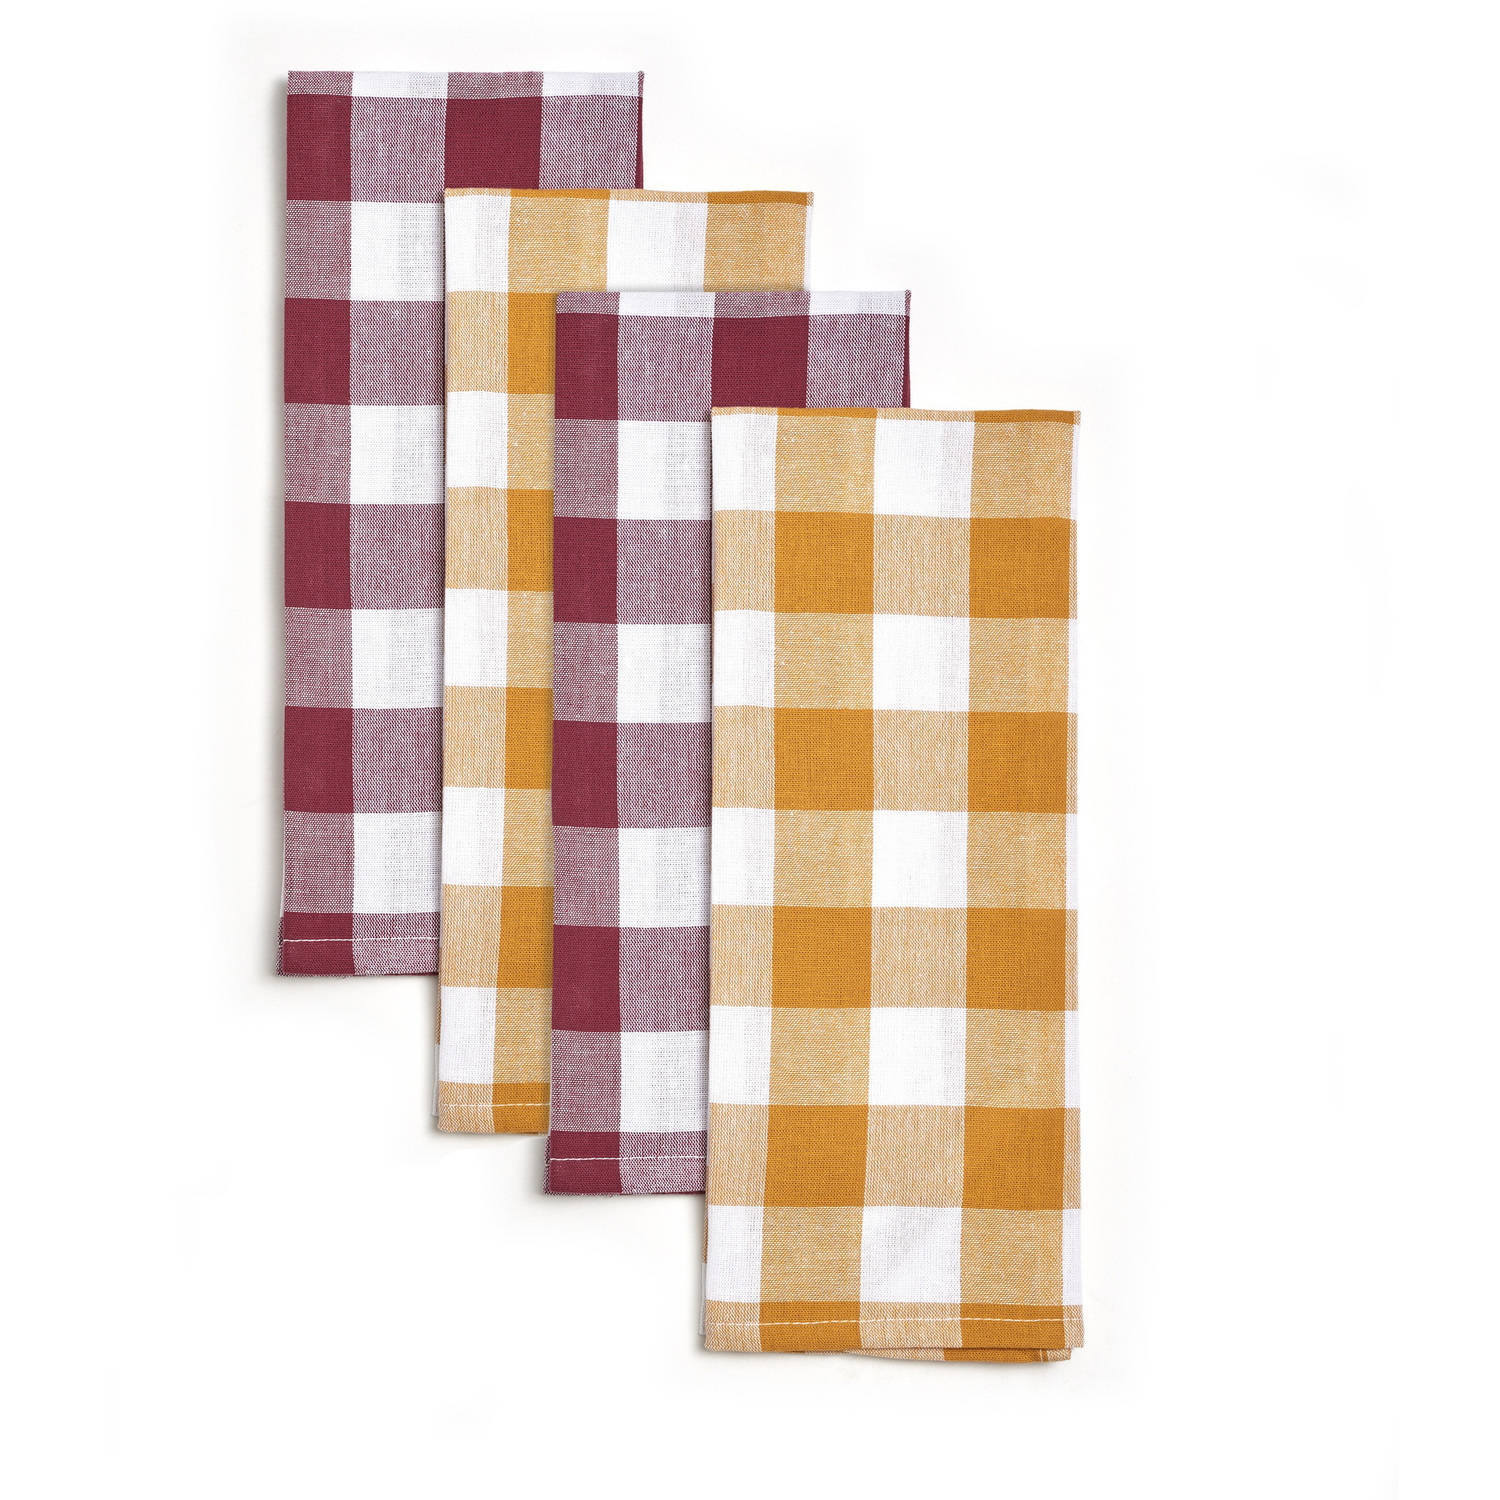 Pioneer Woman Charming Check Kitchen Towels, Set of 4 by